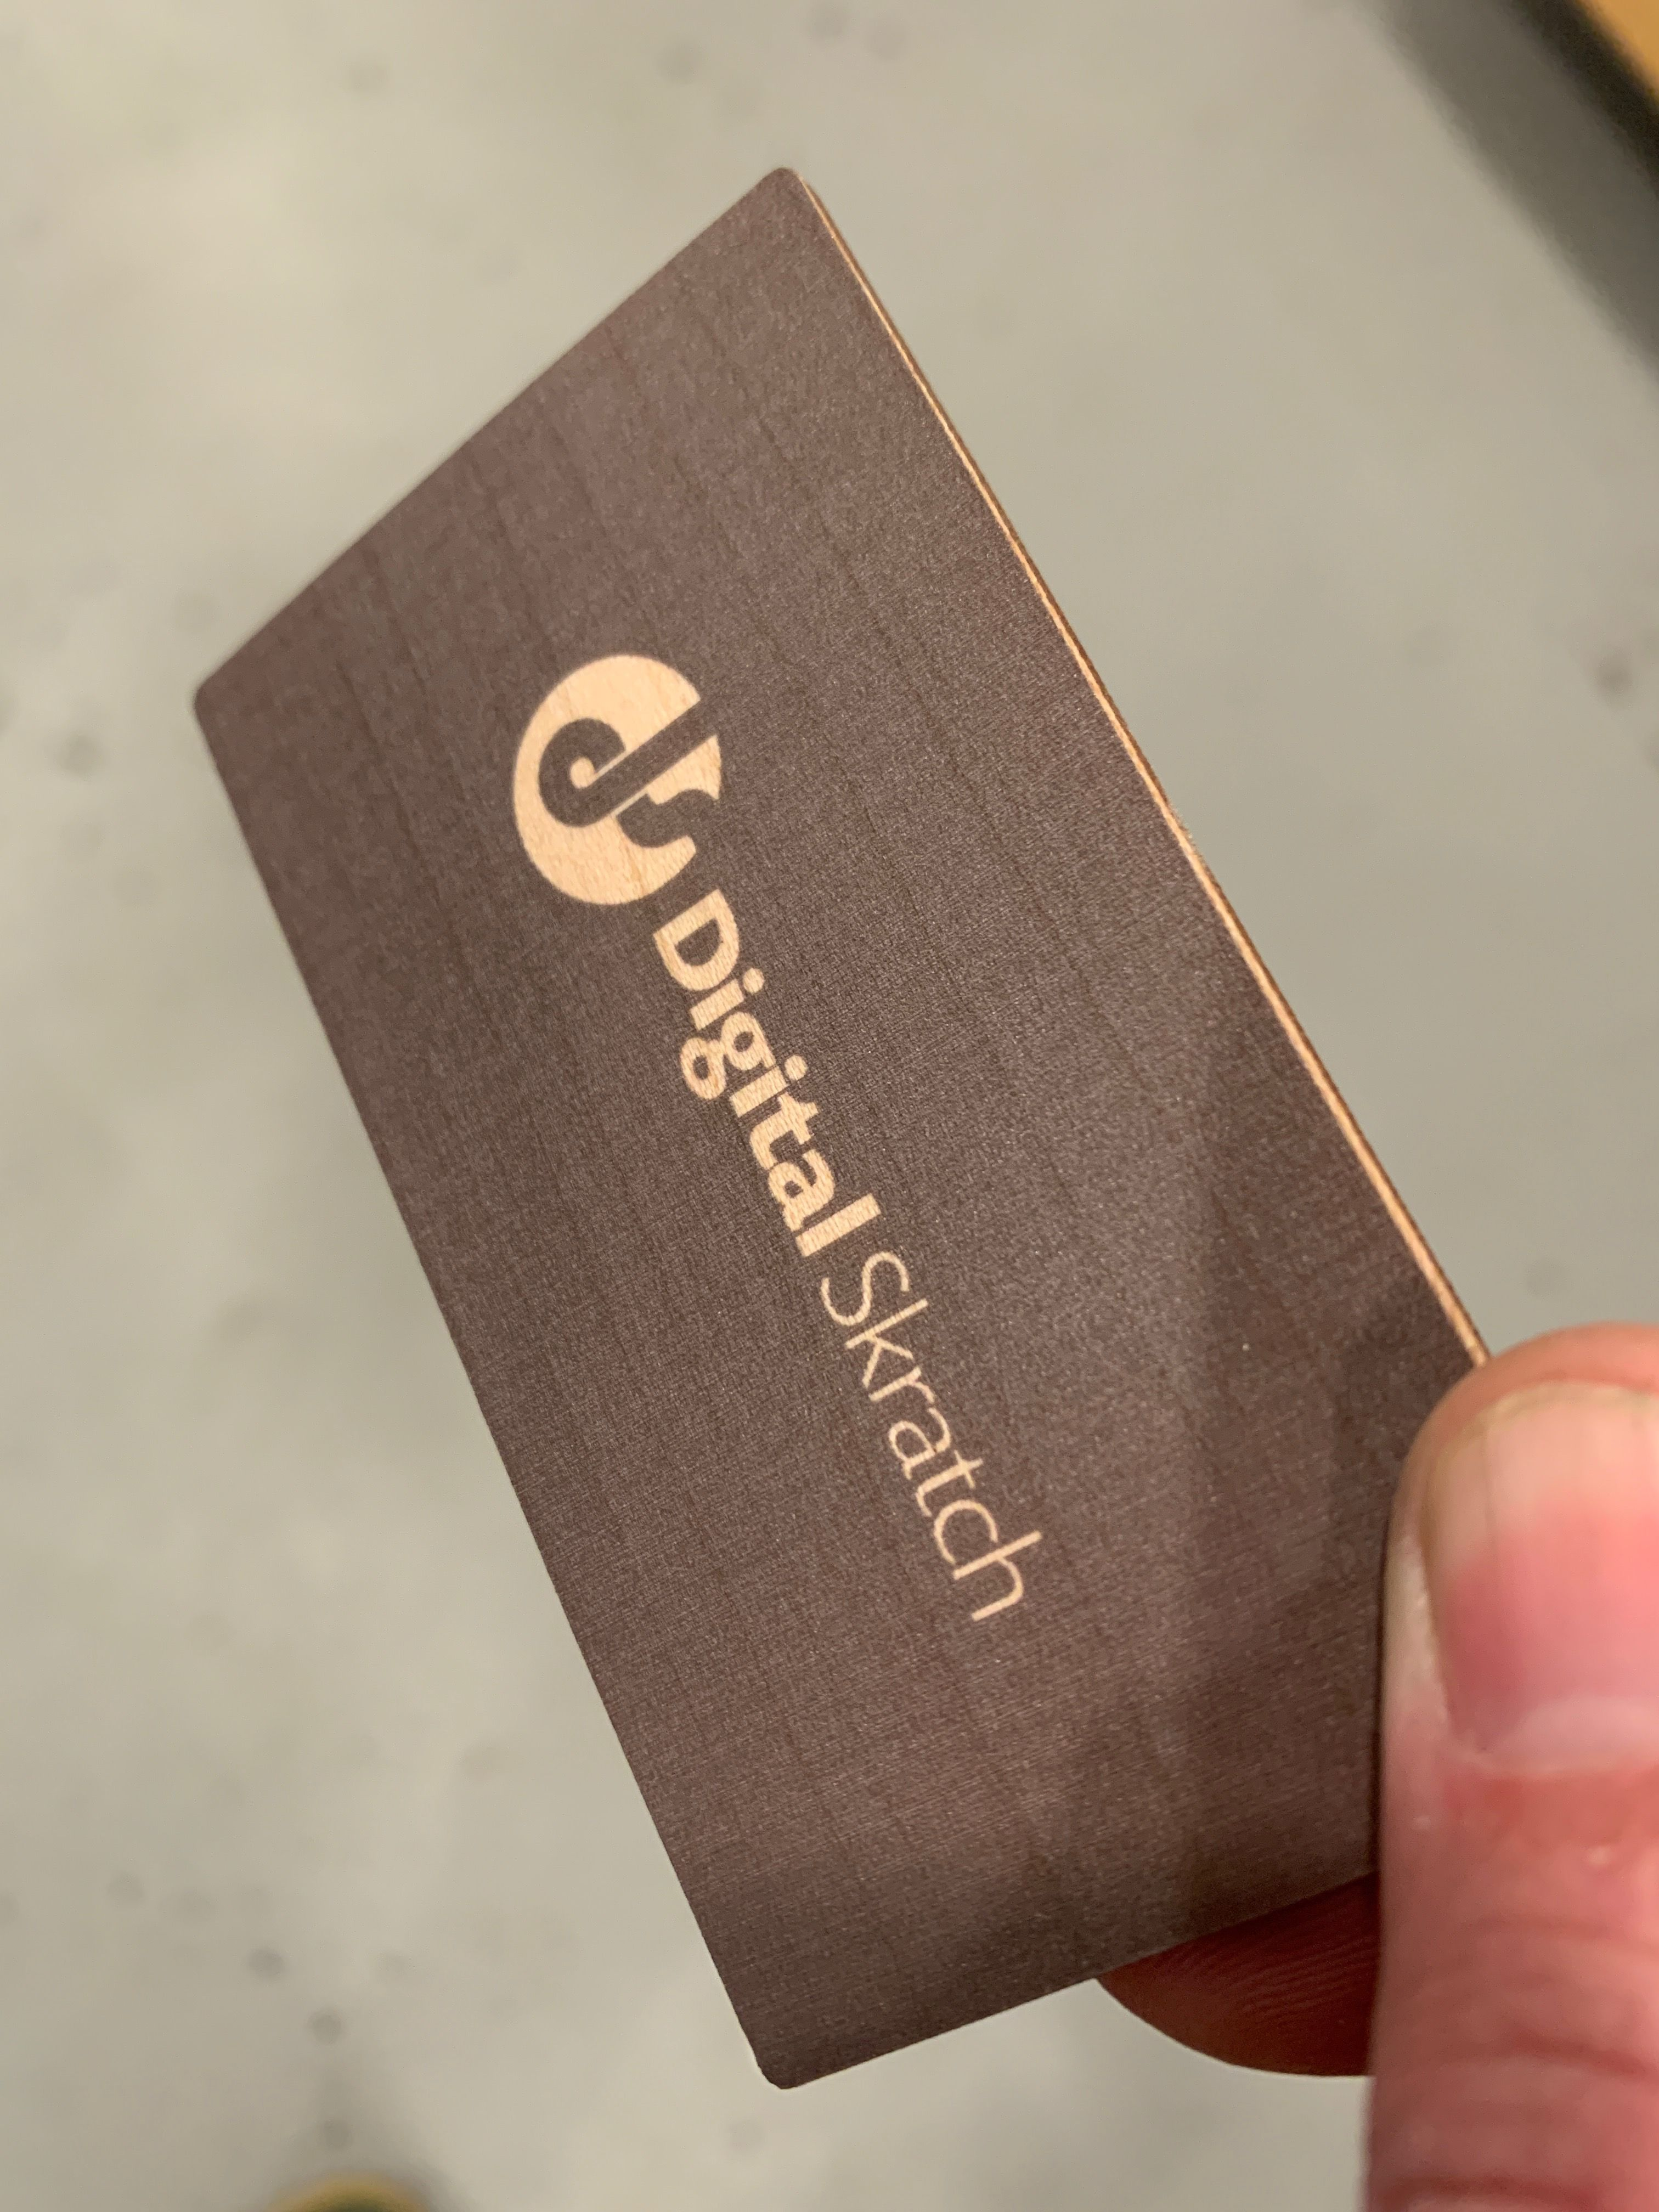 Tested Out A Few Things On The Uv Printer Set The Opacity To 50 To Allow Some Of The W Wood Business Cards Laser Engraved Business Cards Metal Business Cards